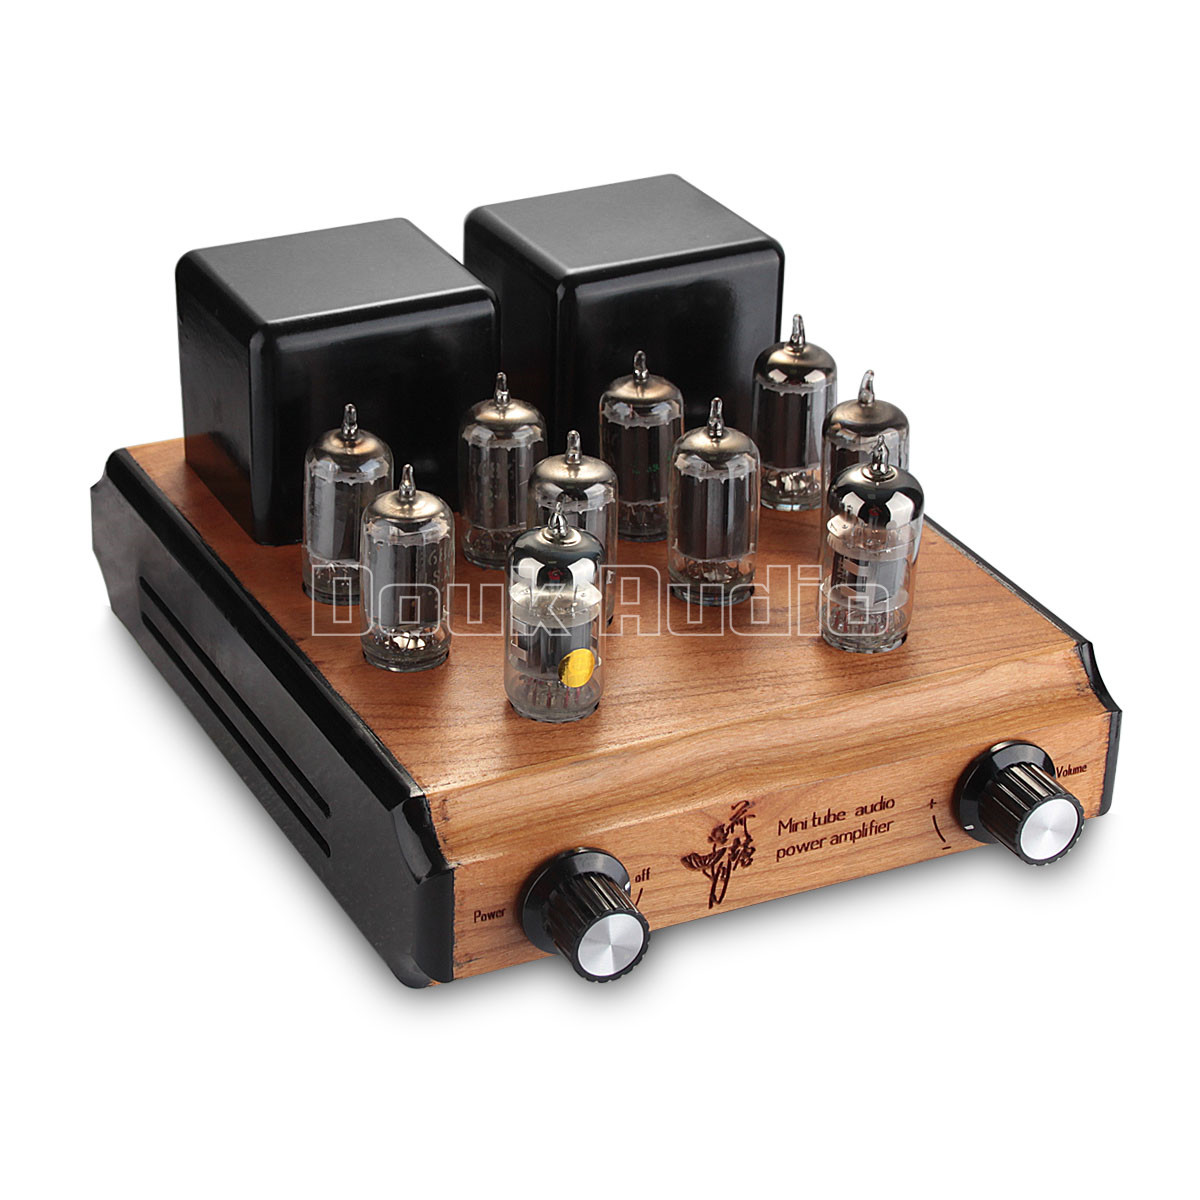 Details about Nobsound Parallel Push-Pull Valve Tube Amplifier HIFI  Integrated Power Amp 10W×2